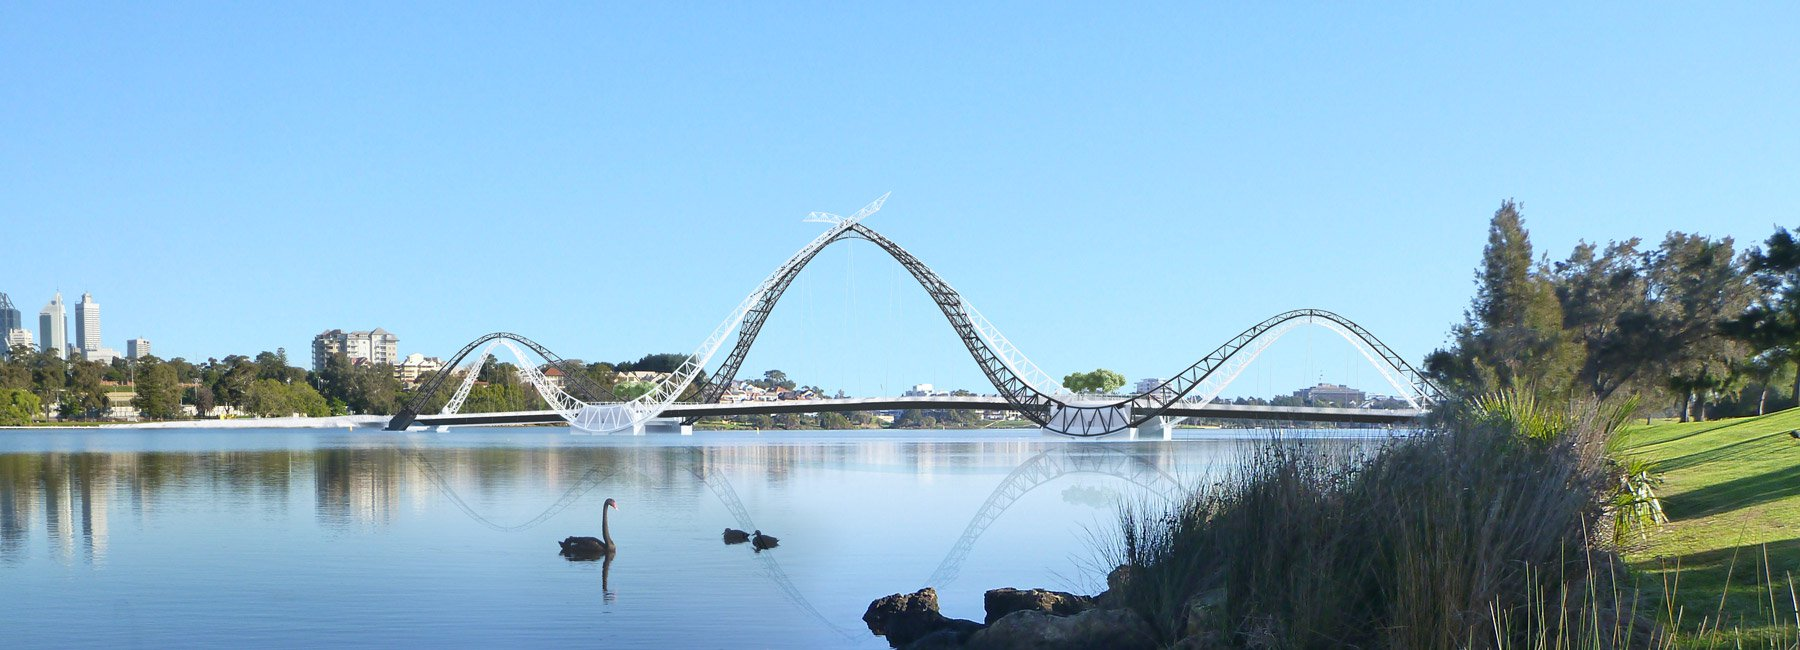 australia's matagarup bridge engages its landscape in a sequence of unfolding vistas